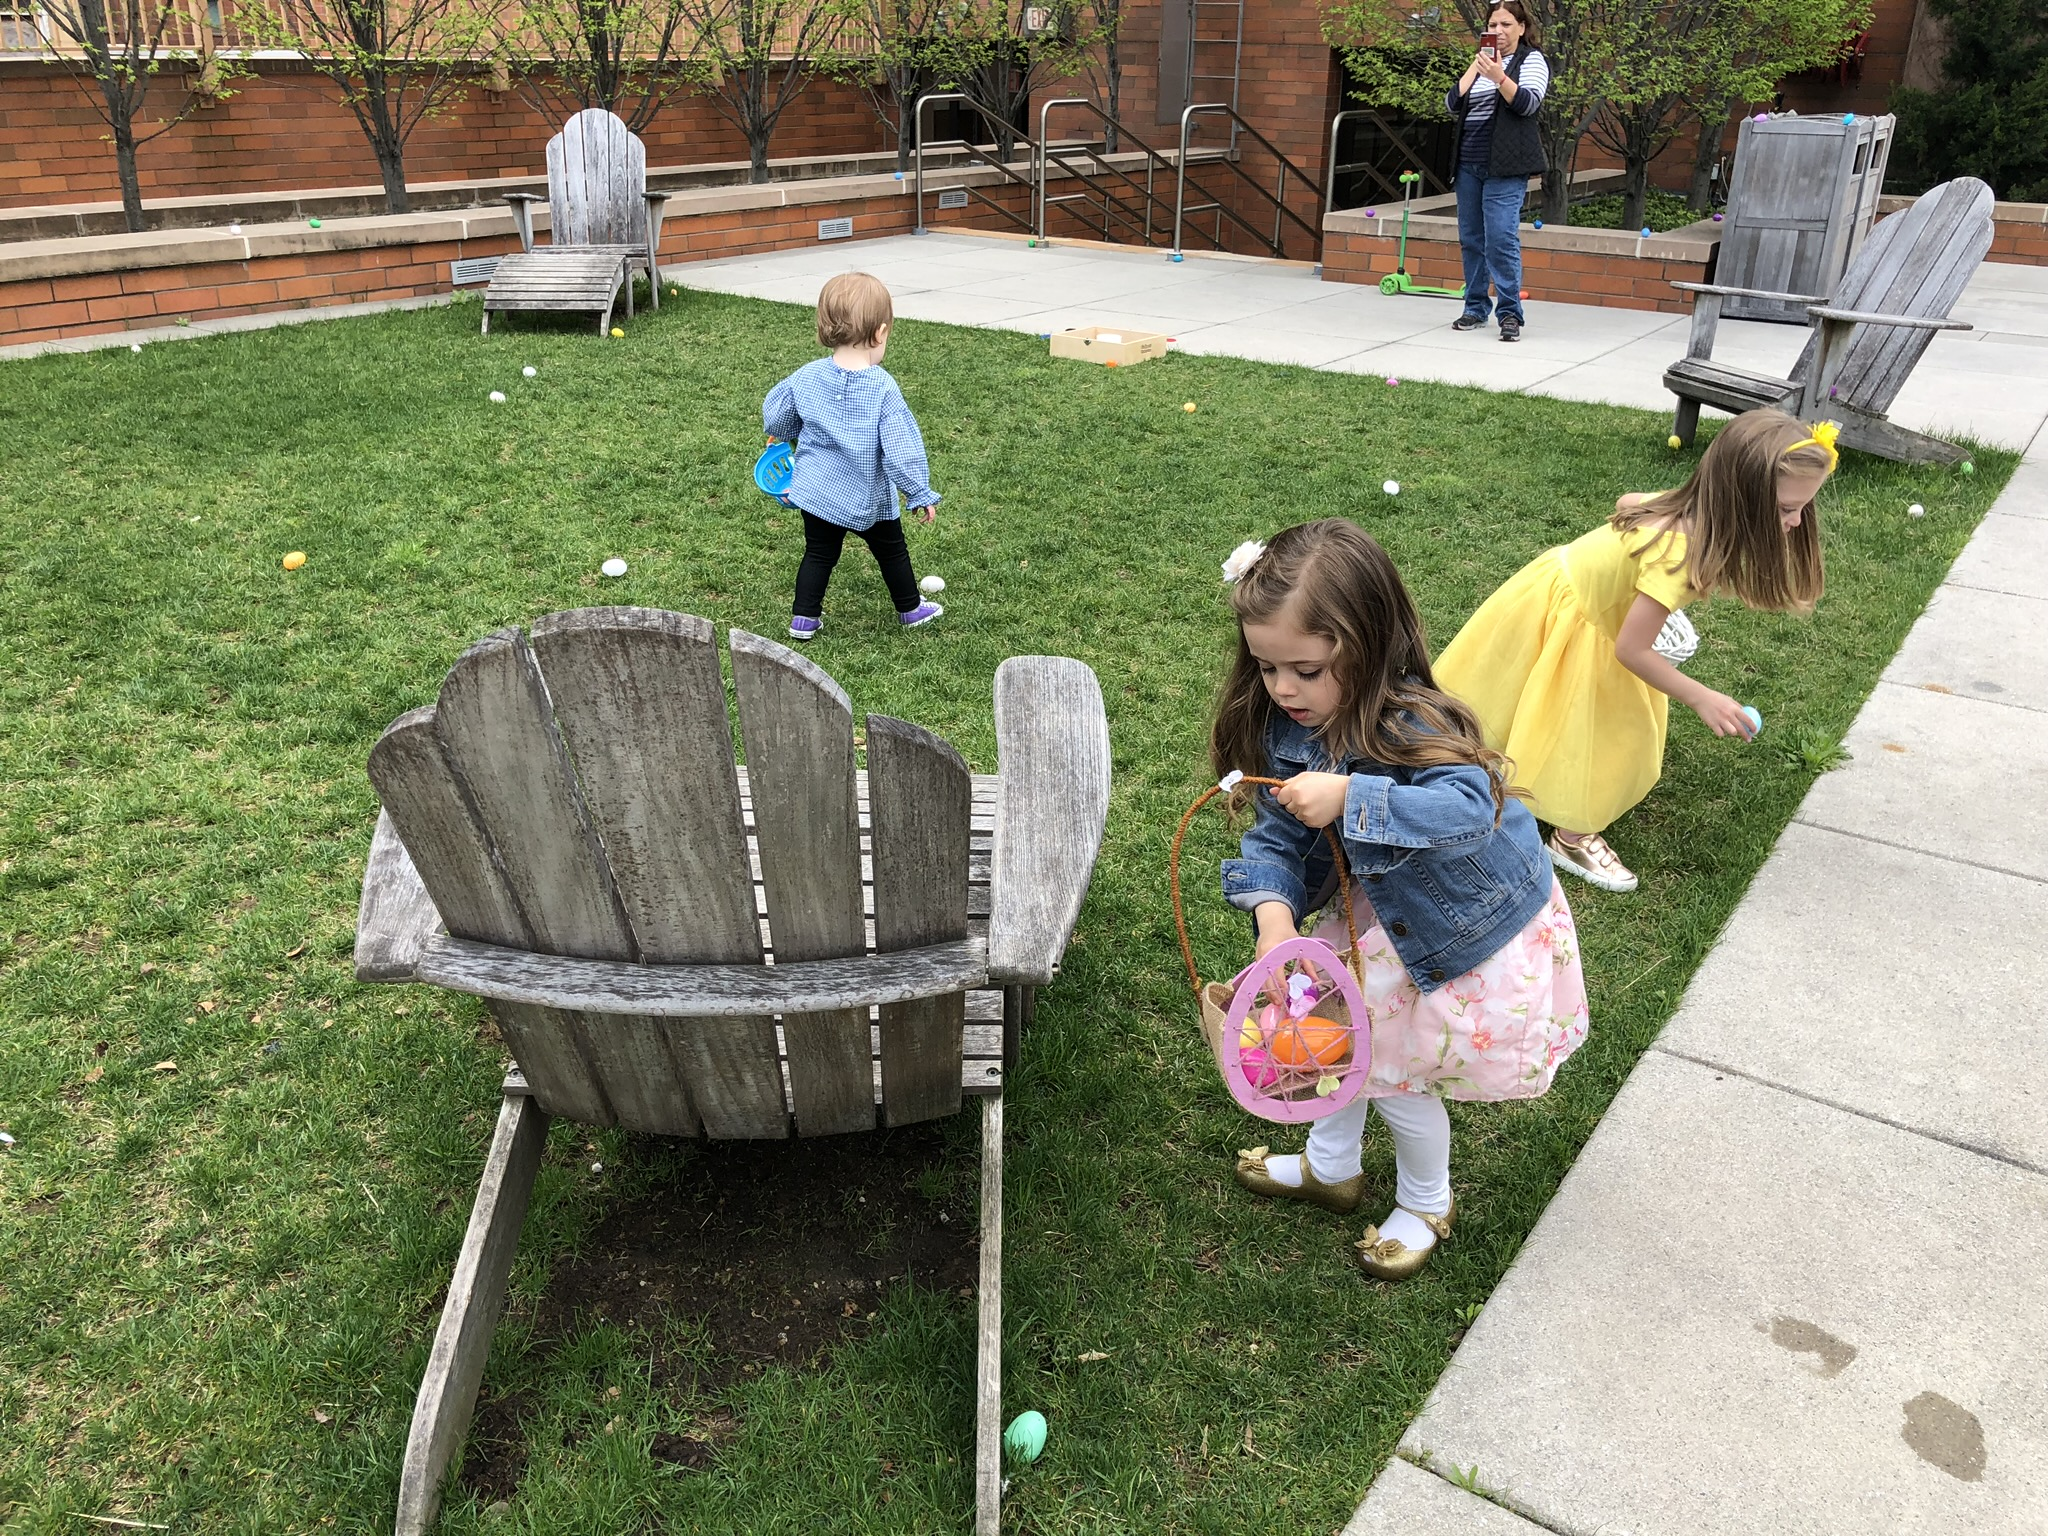 Easter egg hunt on the terrace at a friends place.